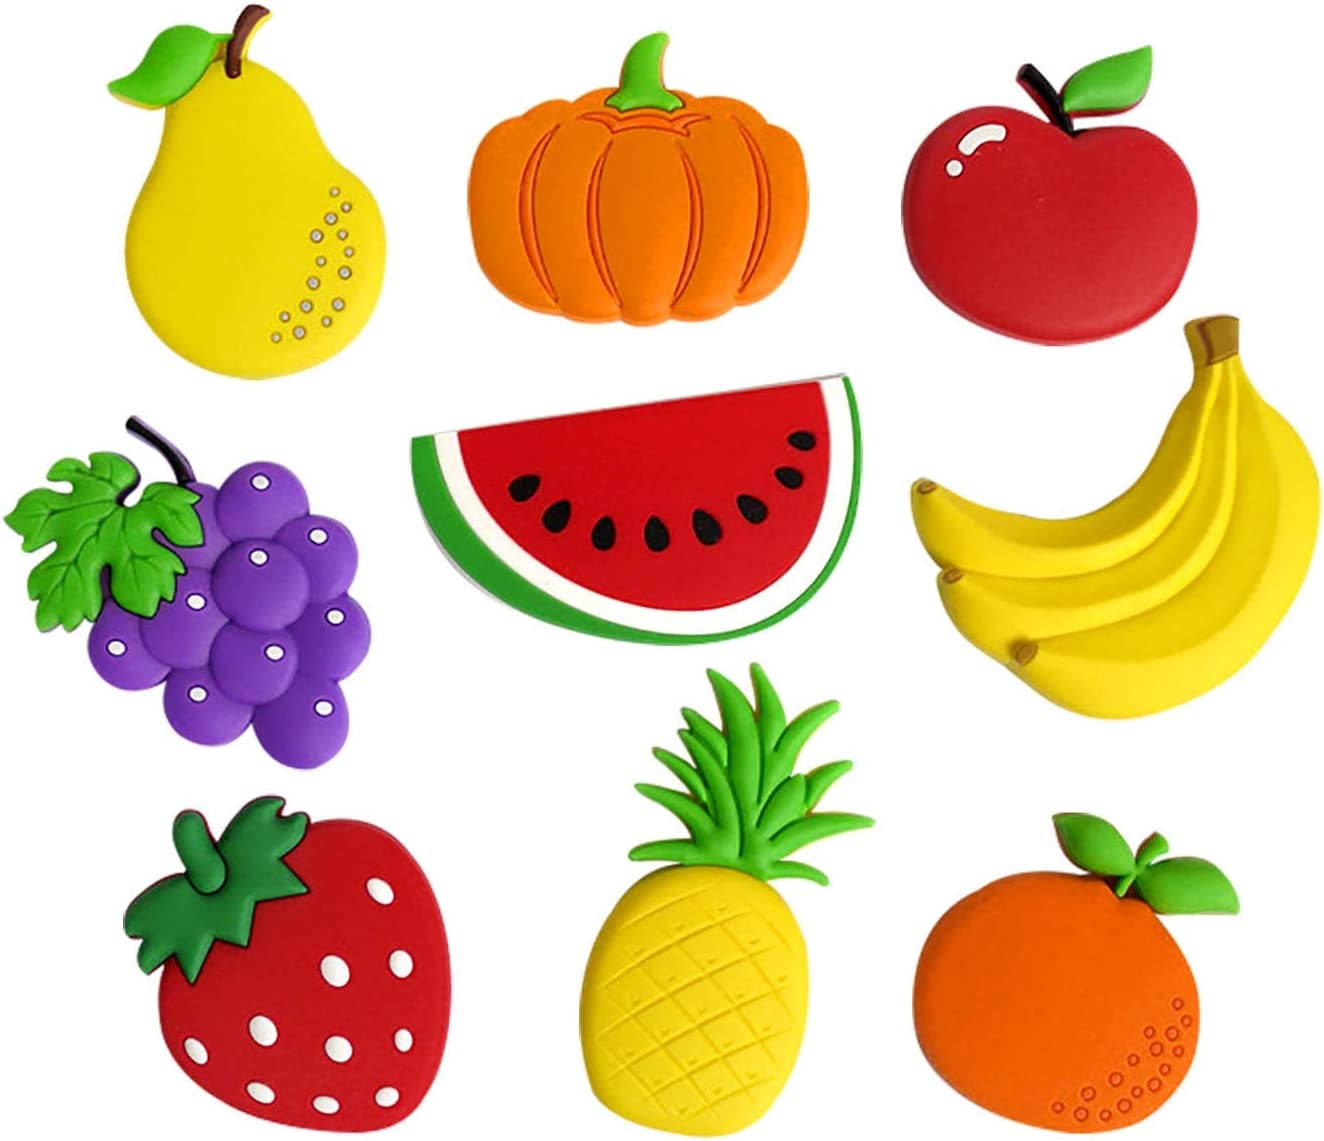 Cute Fruits Vegetables Fridge Magnets Kids Activity Home Decoration Funny Stickers a Set of 9 Pieces